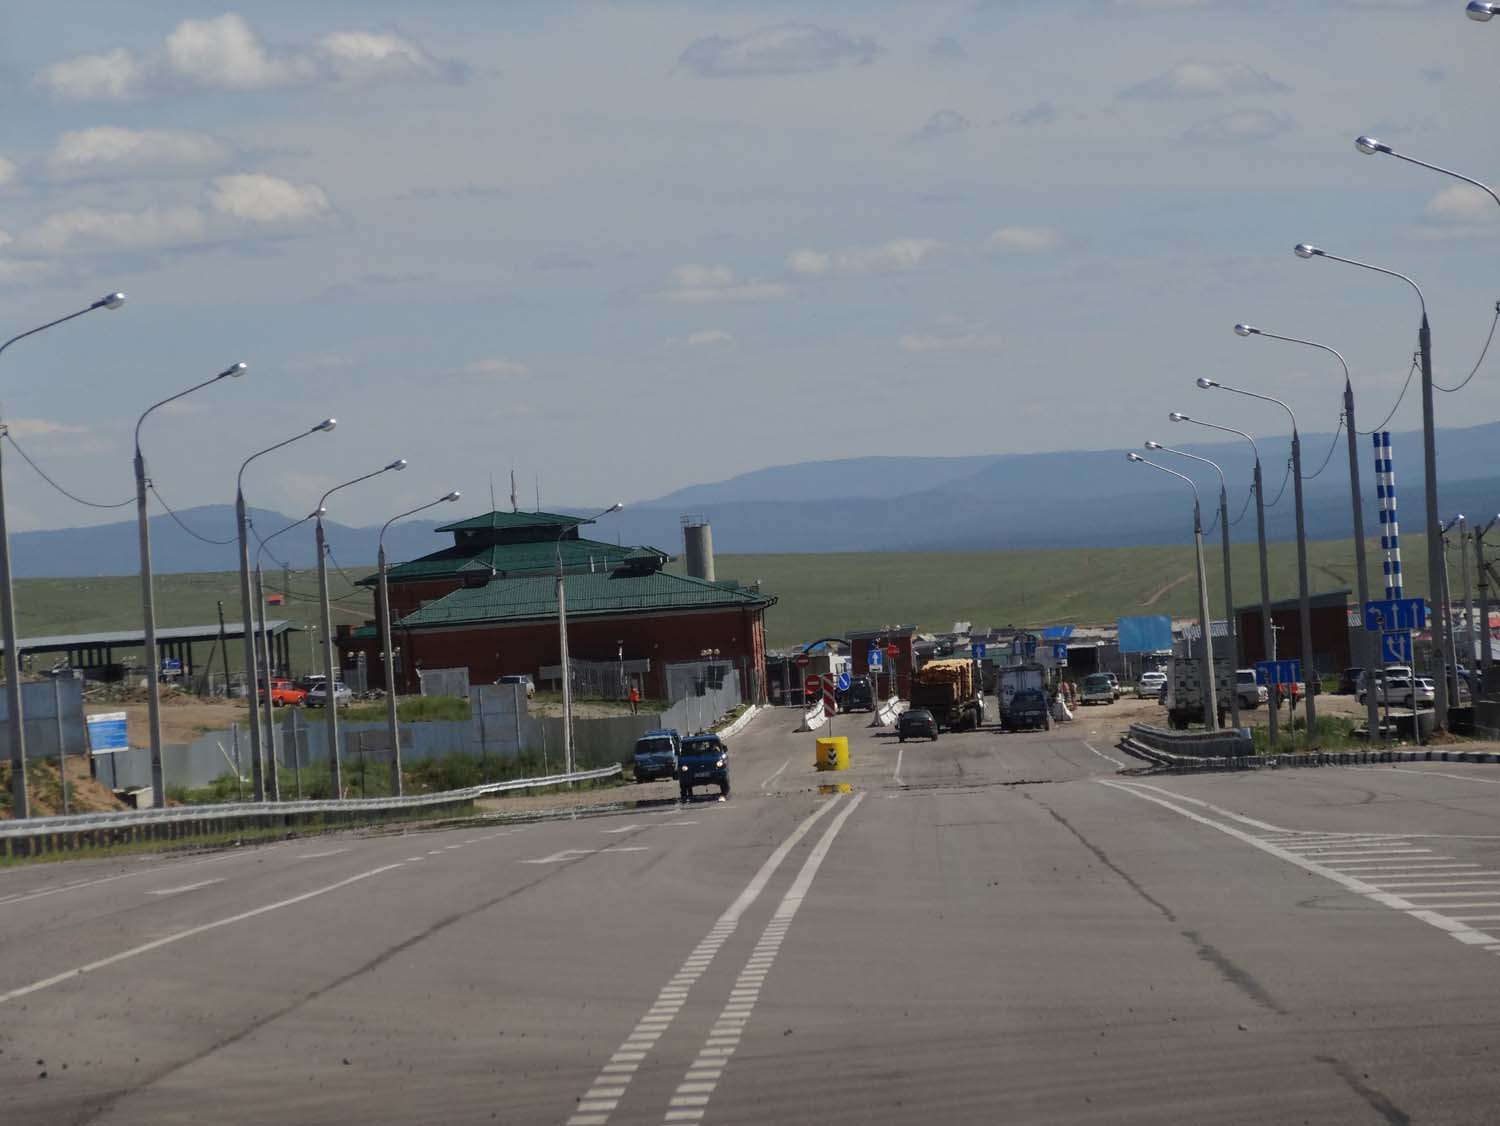 the entry gate to the border area is behind the cars and trucks parked (at the stop sign).